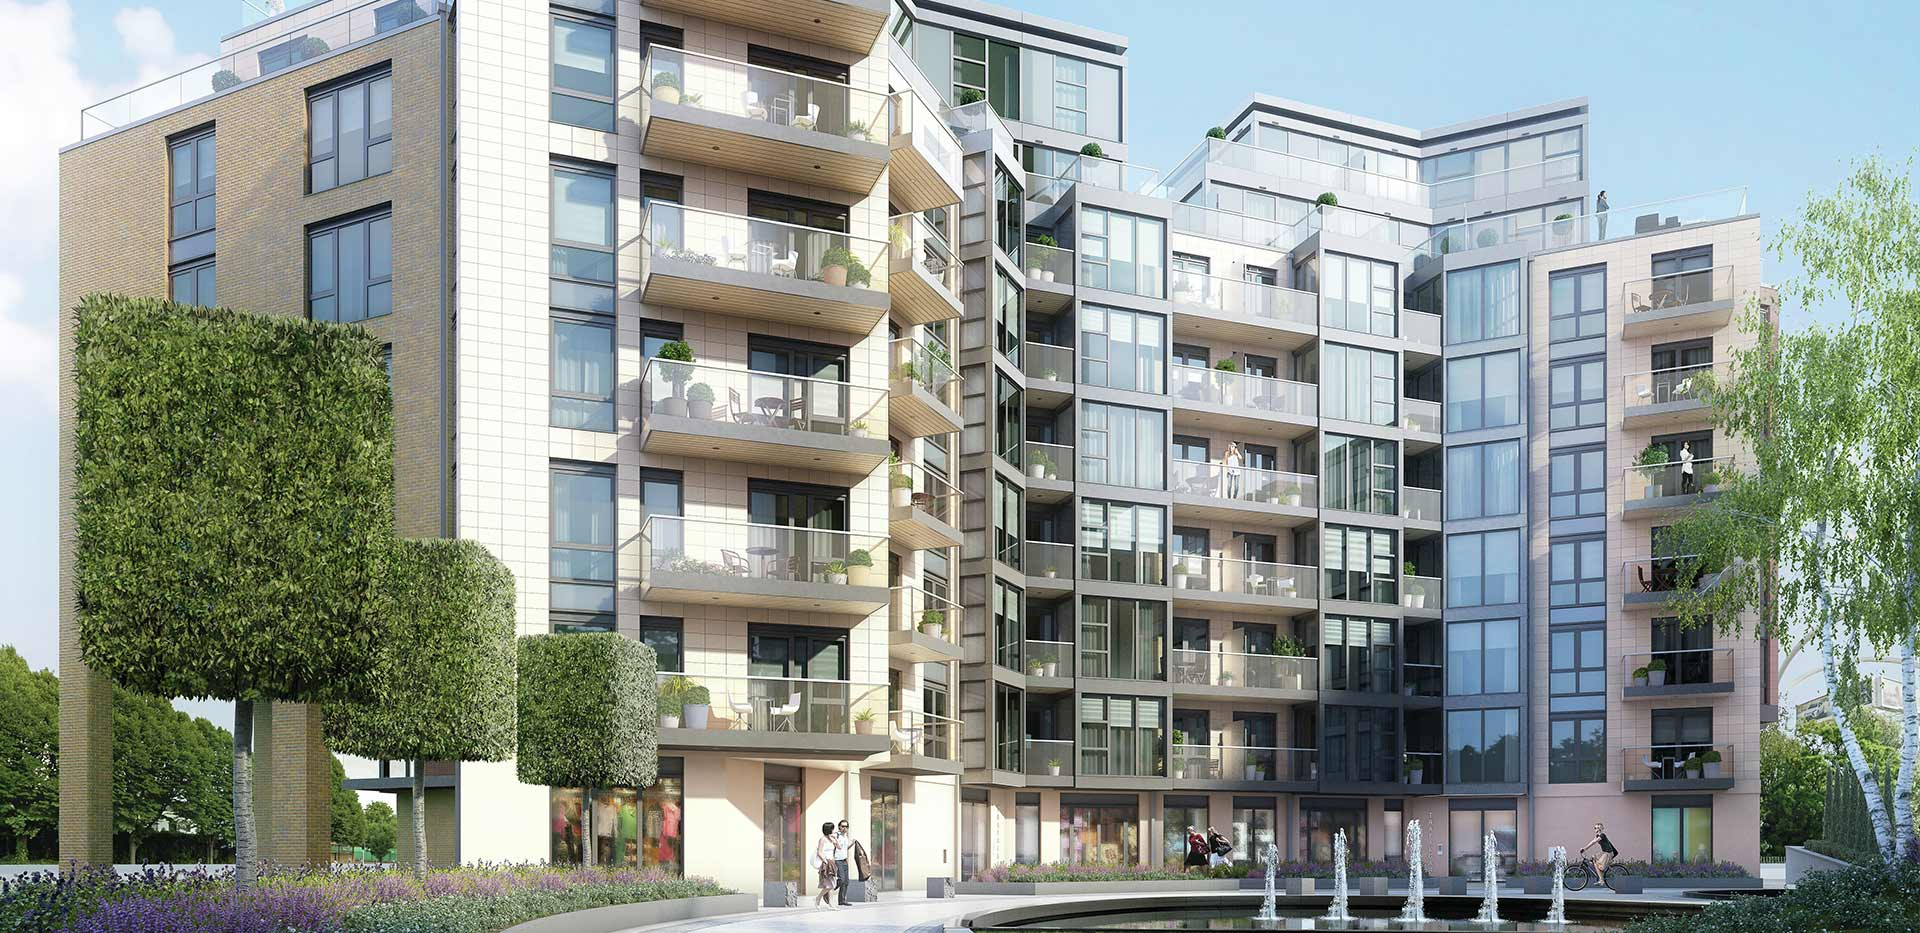 Berkeley, Battersea Reach, Development Exterior 04